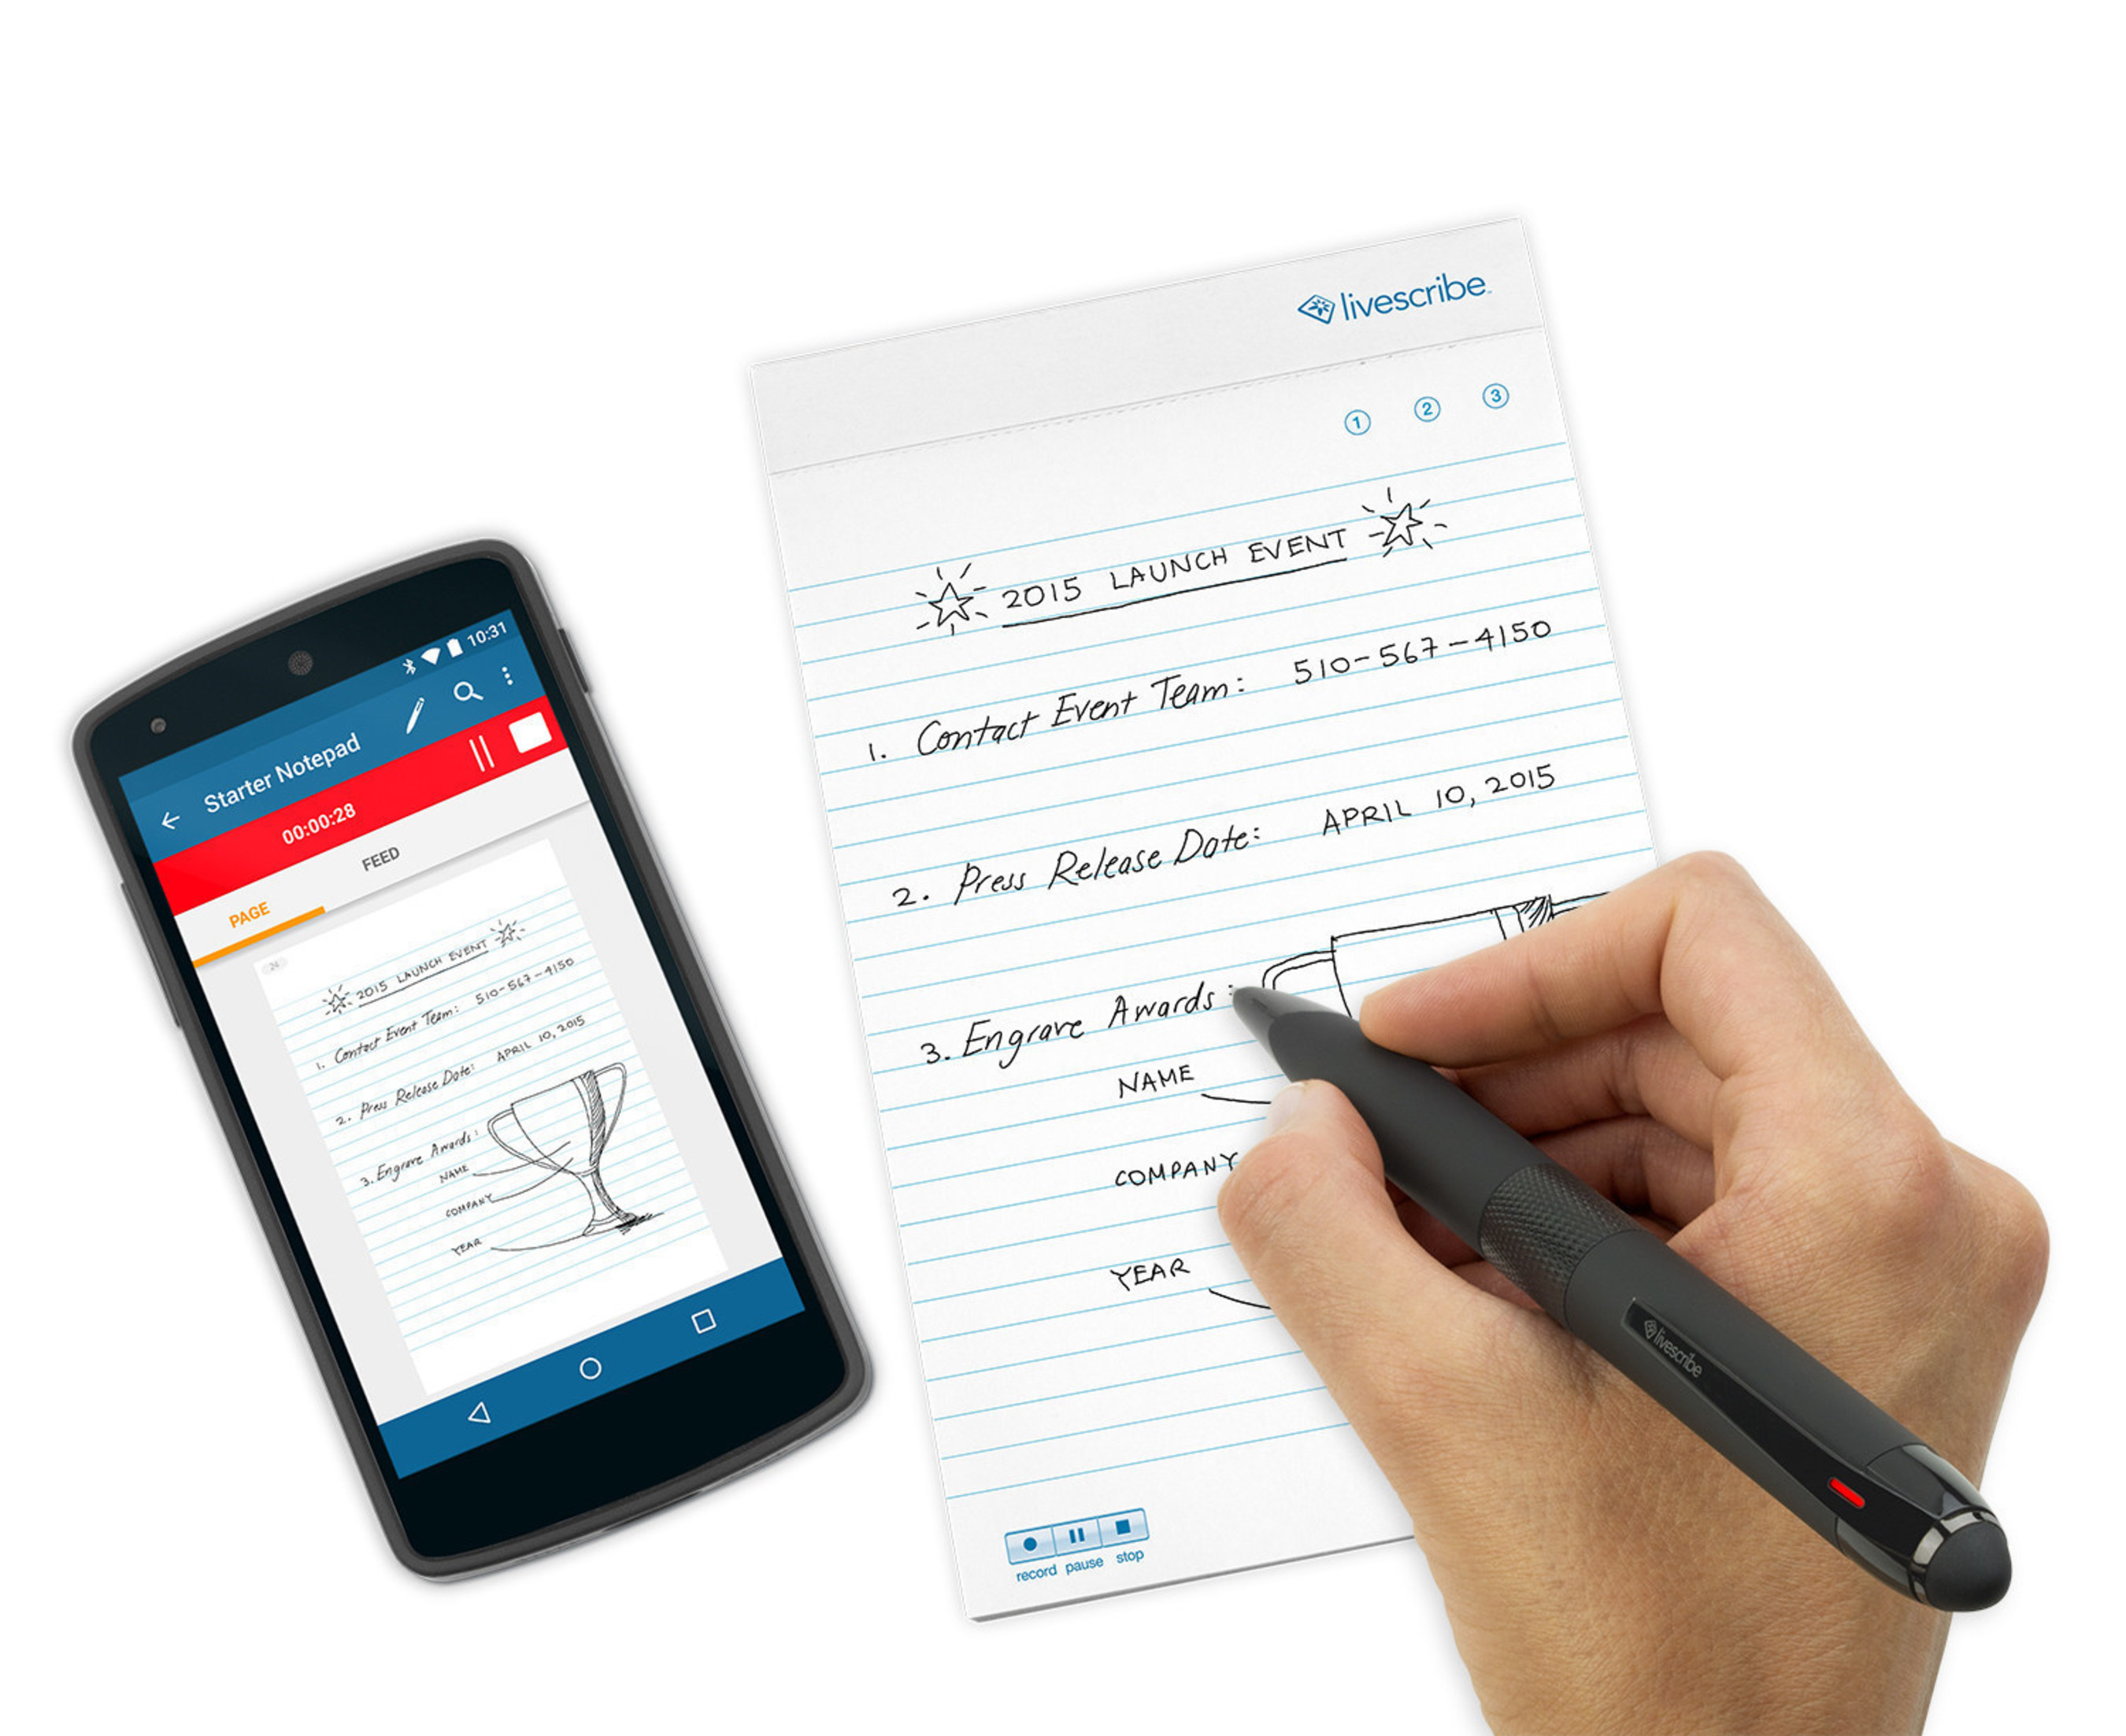 Livescribe has revealed the Livescribe 3 Black Edition smartpen, a new and refined addition to the company's popular Livescribe 3 line of smartpens. The Livescribe 3 Black Edition is available today for $149.95.